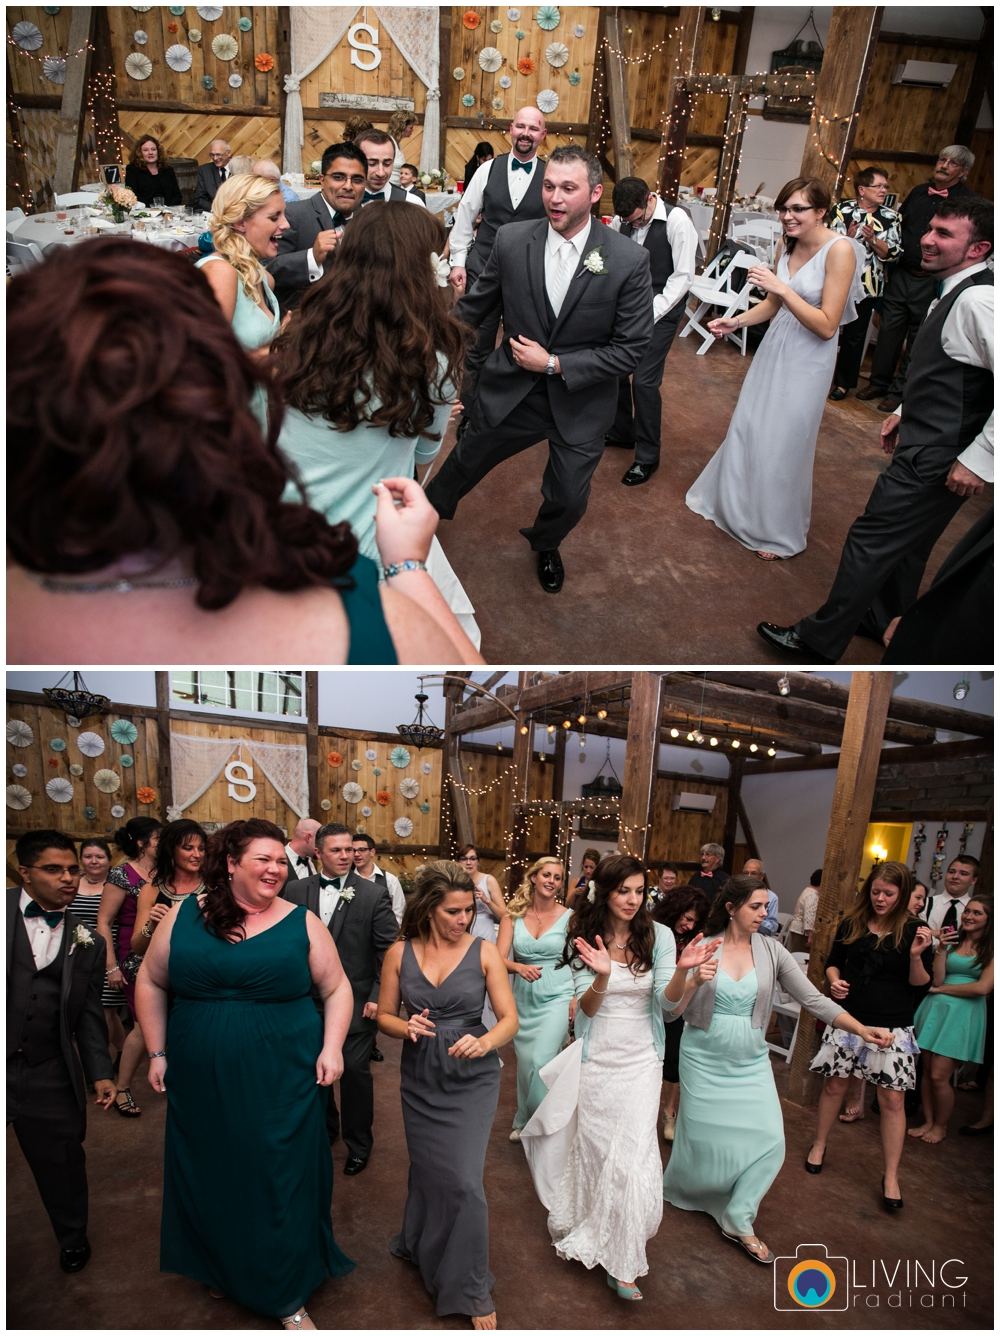 sara+chris-simons-wedding-belleville-winery-pa-living-radiant-photography_0068.jpg